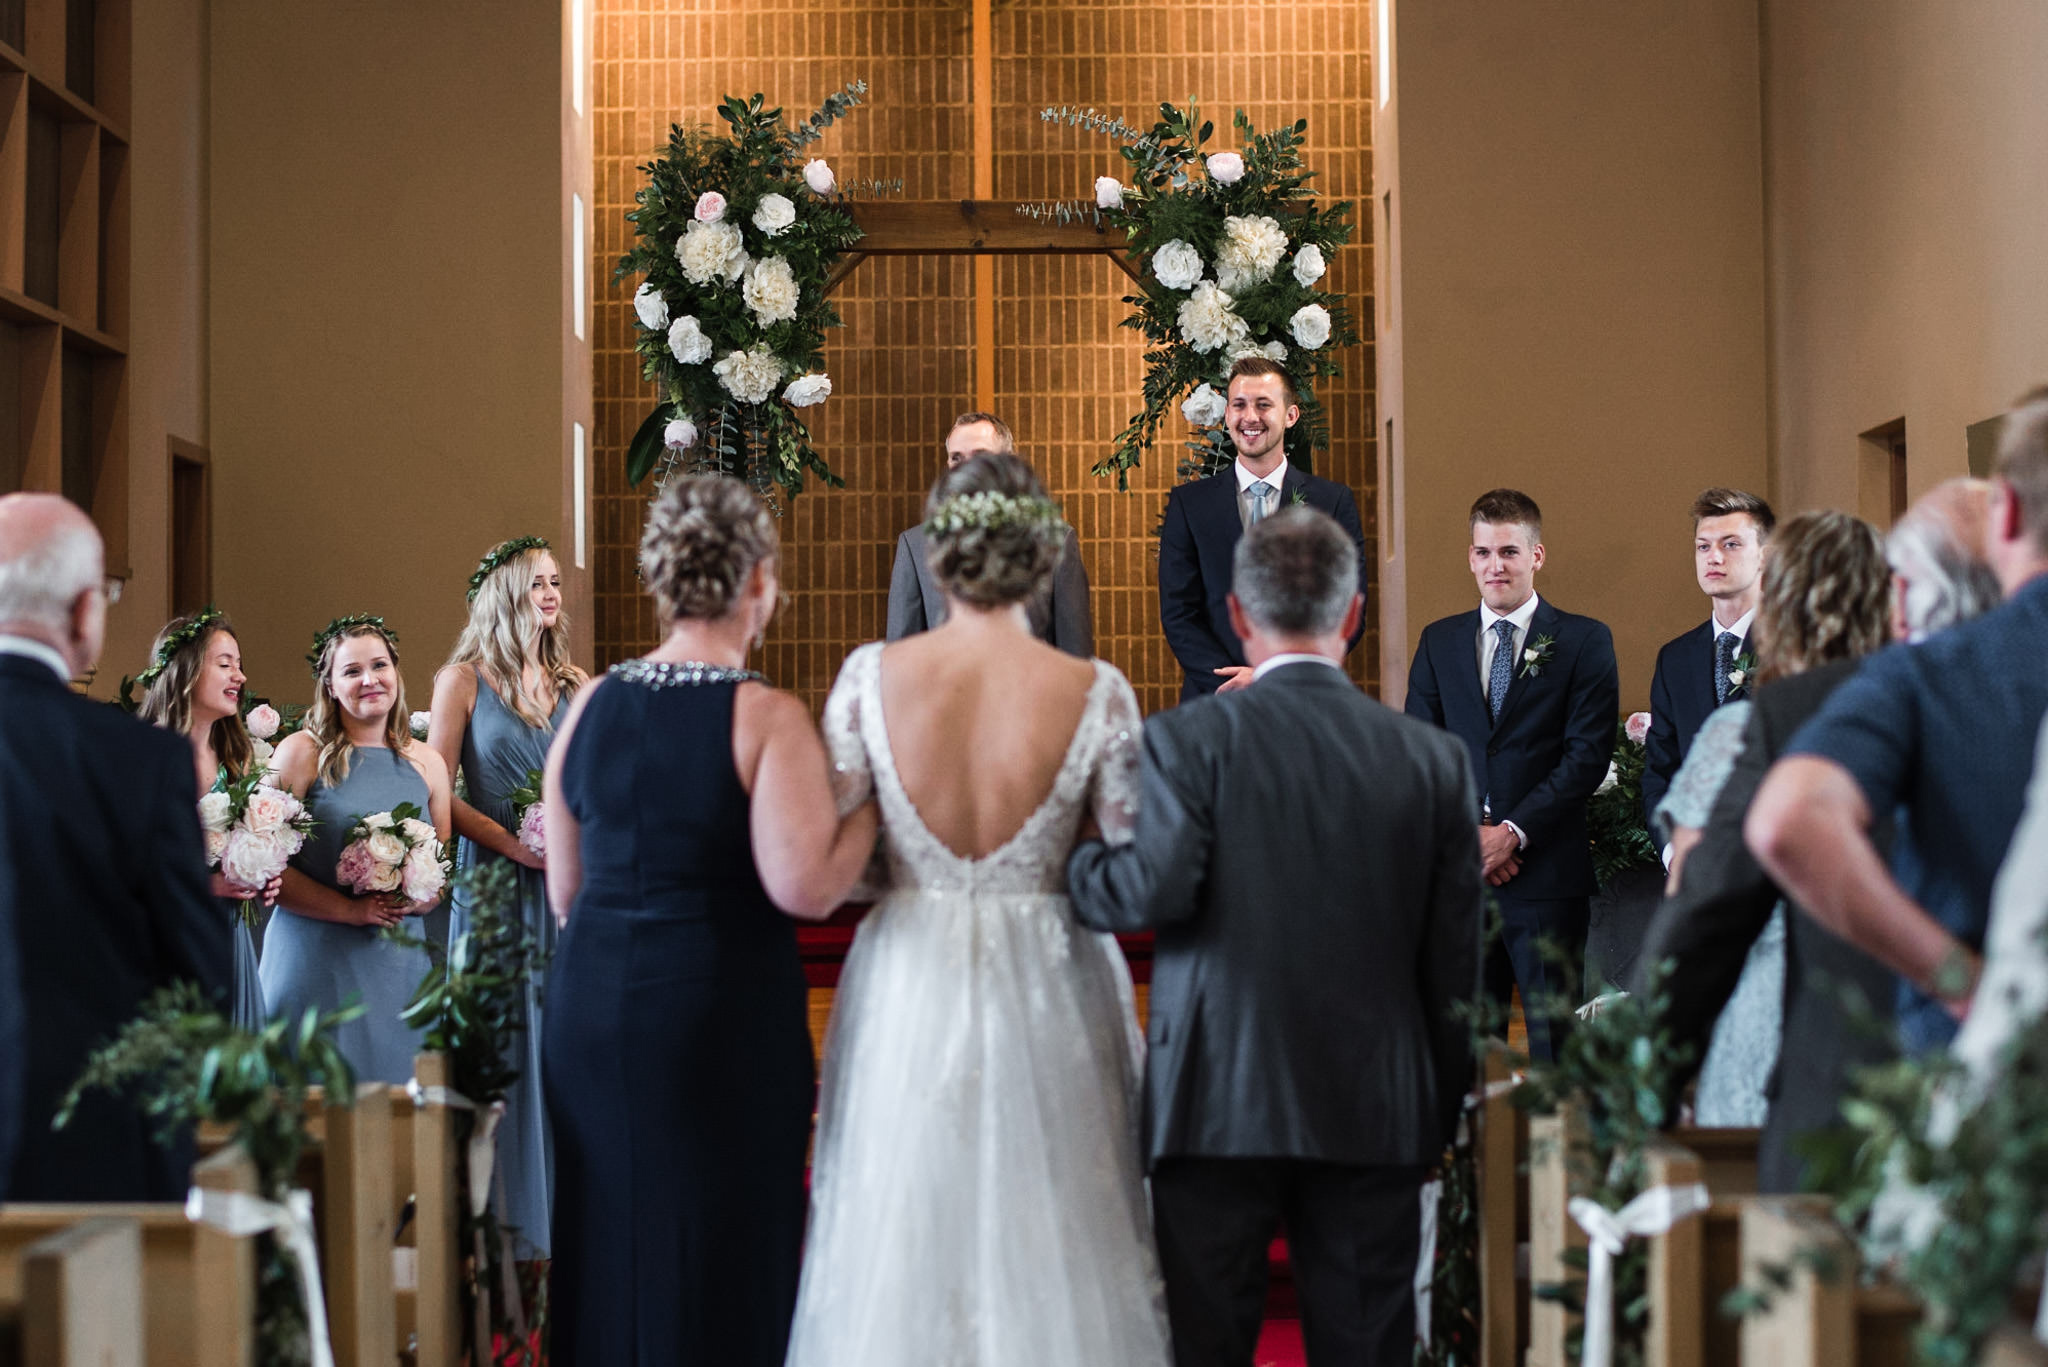 192-groom-reaction-seeing-bride-down-aisle-wedding-ceremony-wooden-arch.jpg